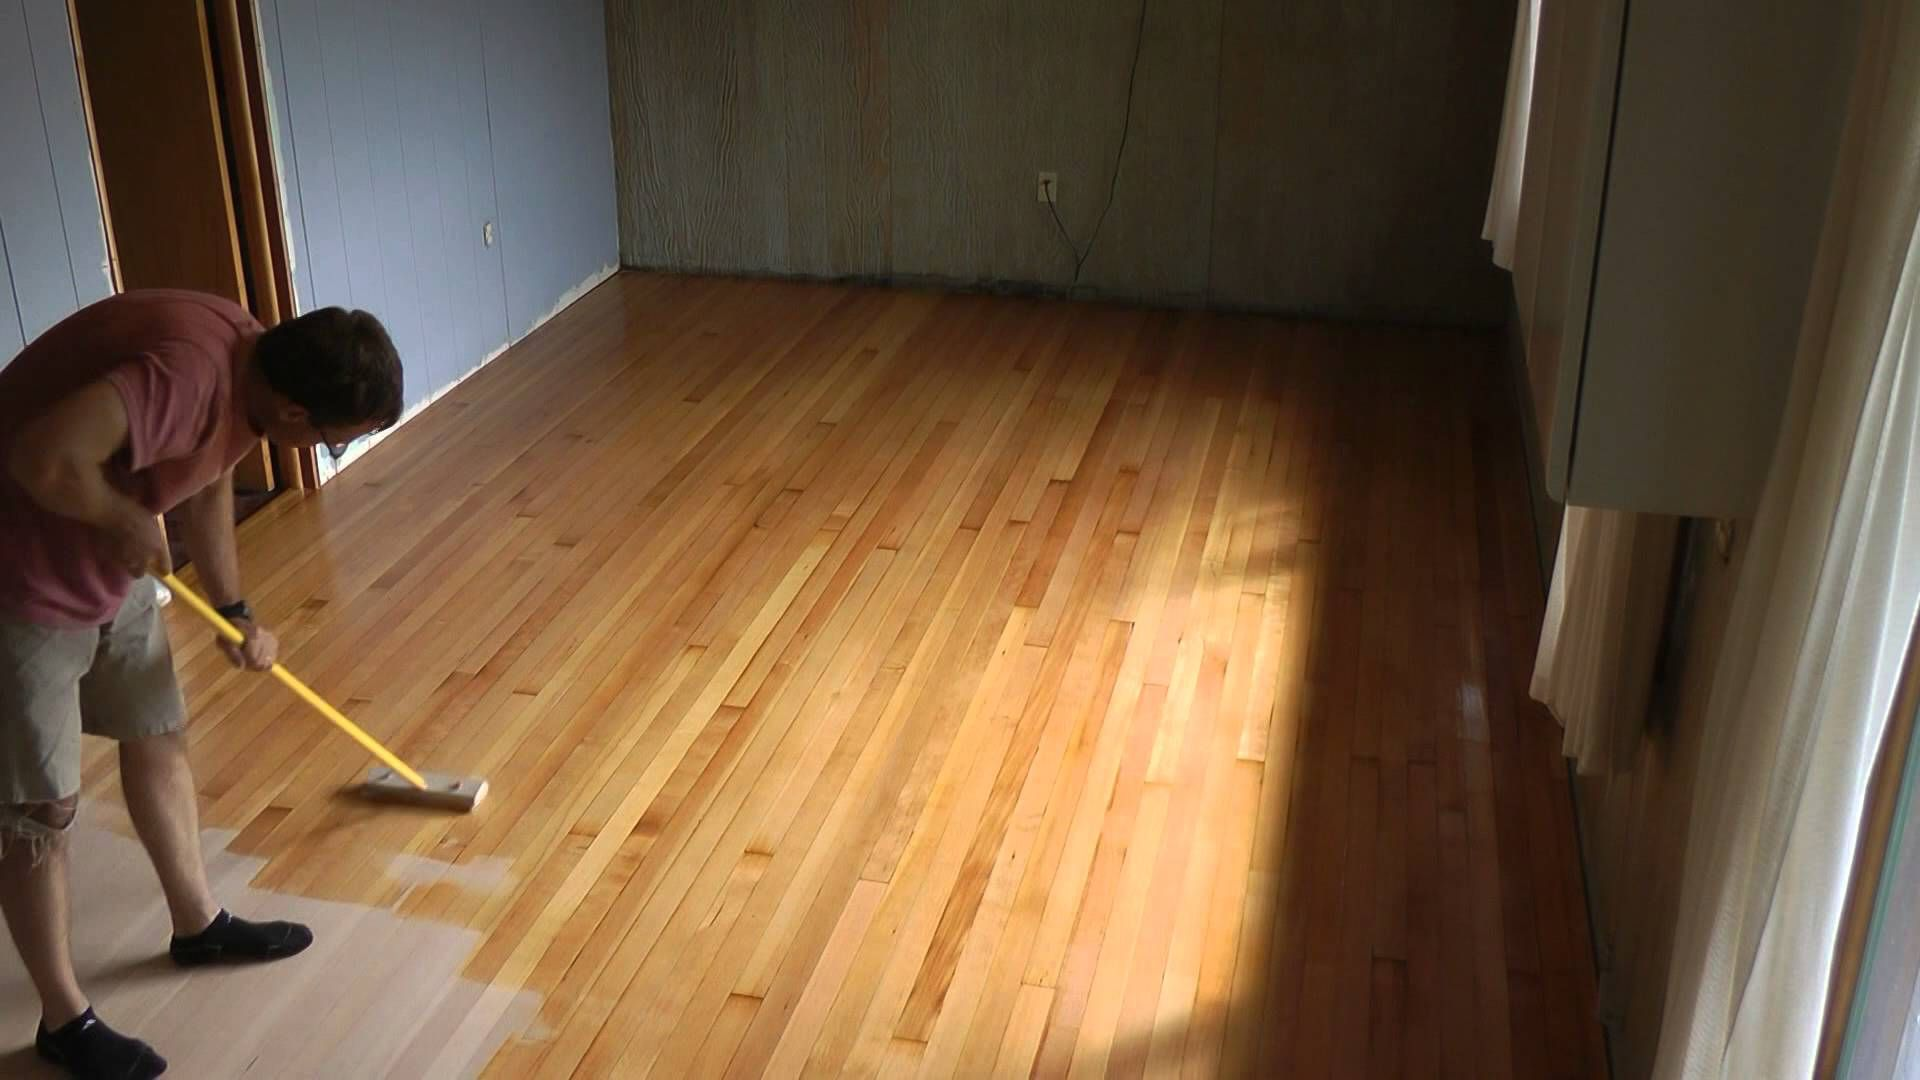 Water Based Varathane Best For Natural Colored Wood Novice Varathane Oil Based Nightmare And Recovery Varathane Wood Stain Staining Wood Flooring